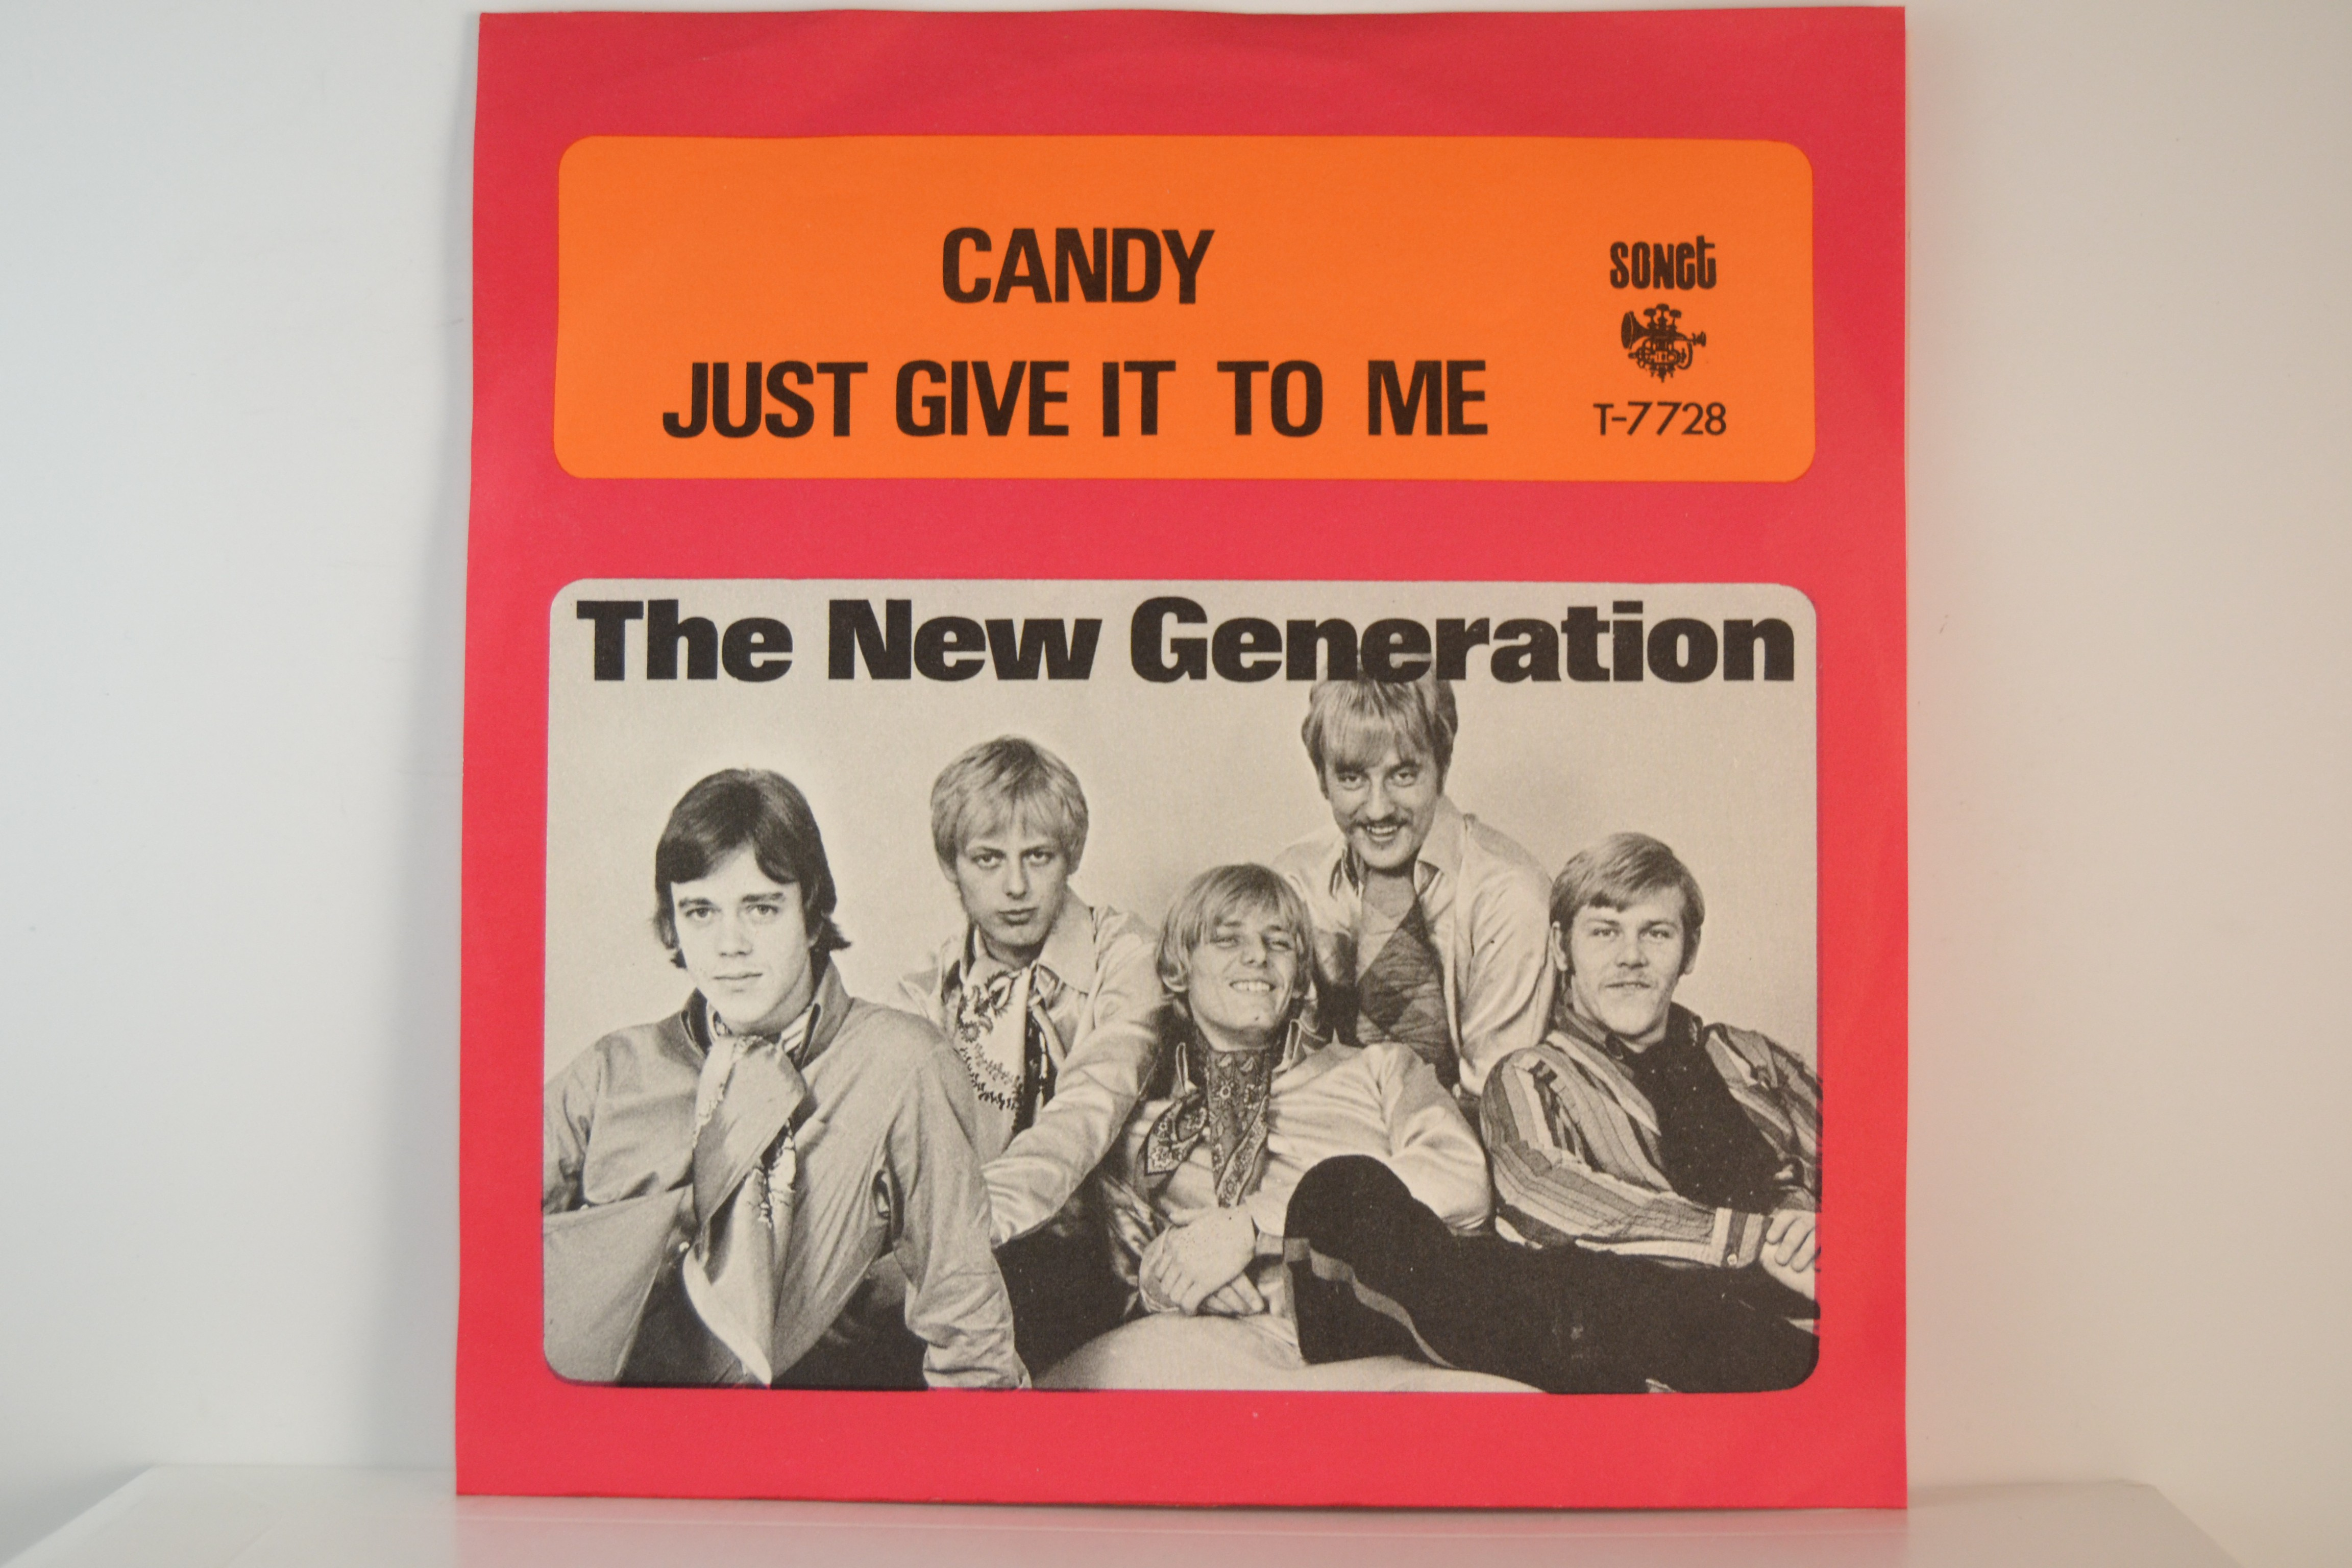 NEW GENERATION : Just give it to me / Candy